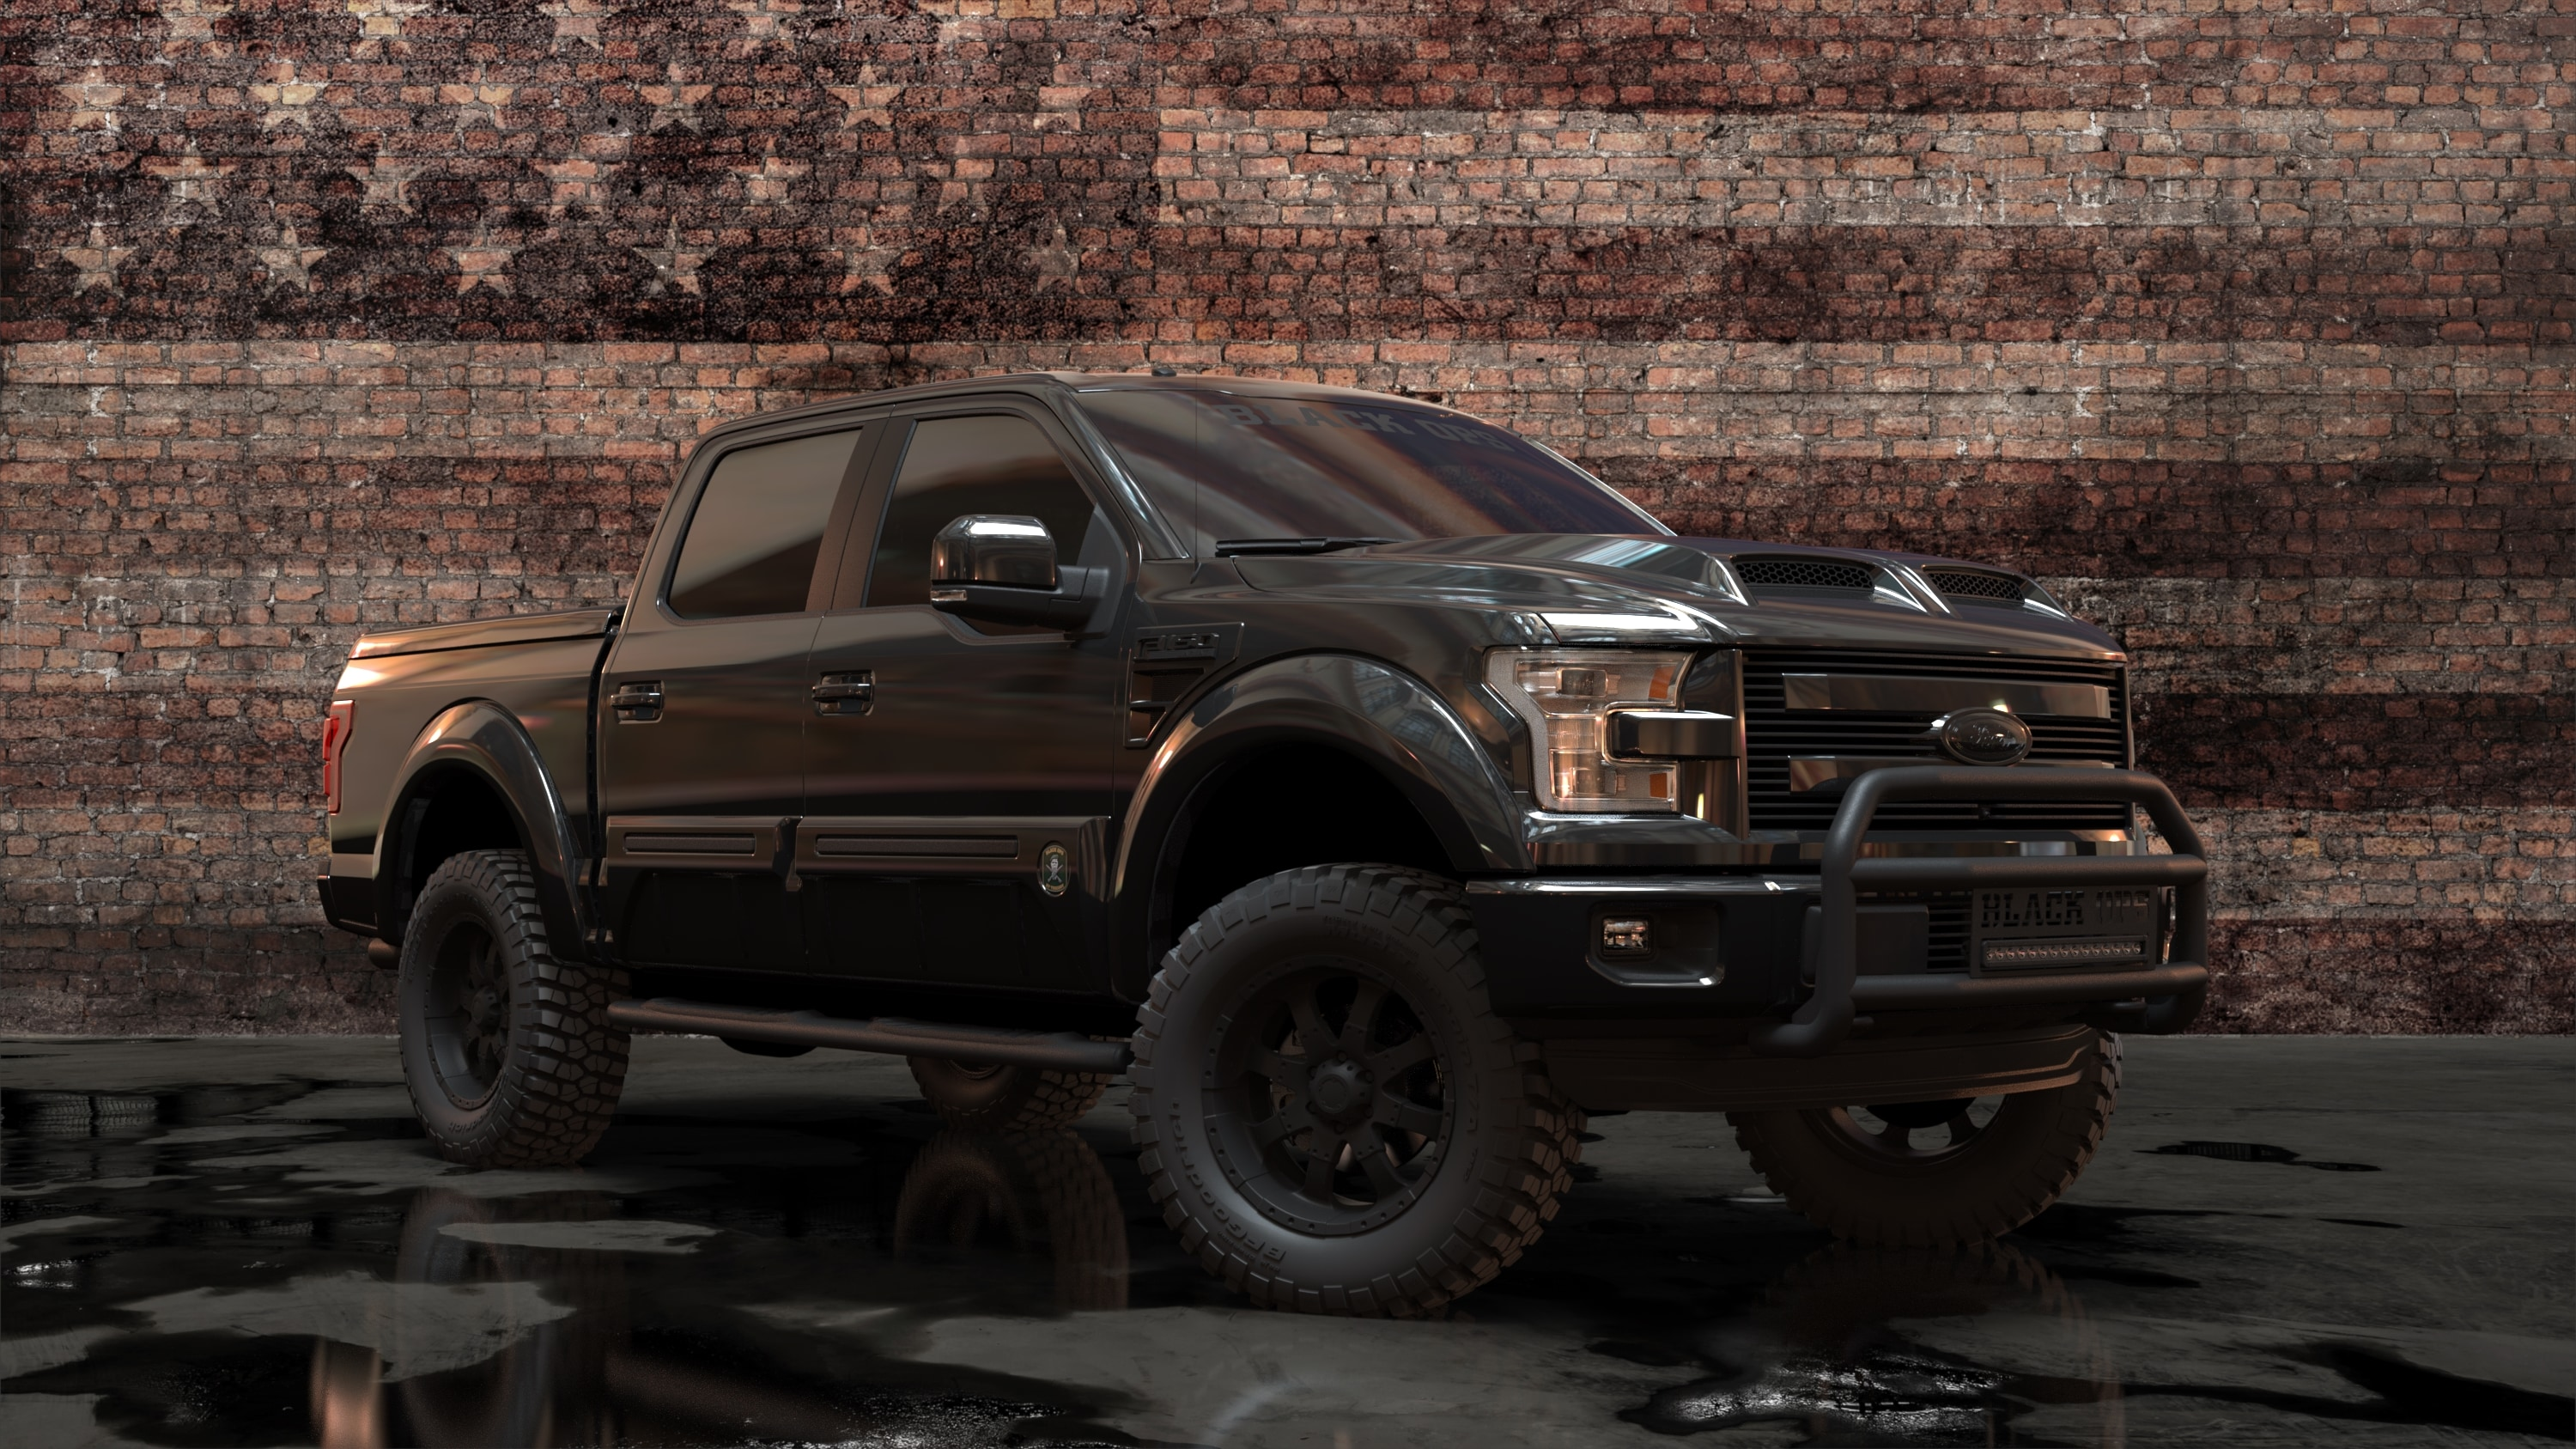 tuscany f series ftx black ops custom lifted trucks. Black Bedroom Furniture Sets. Home Design Ideas